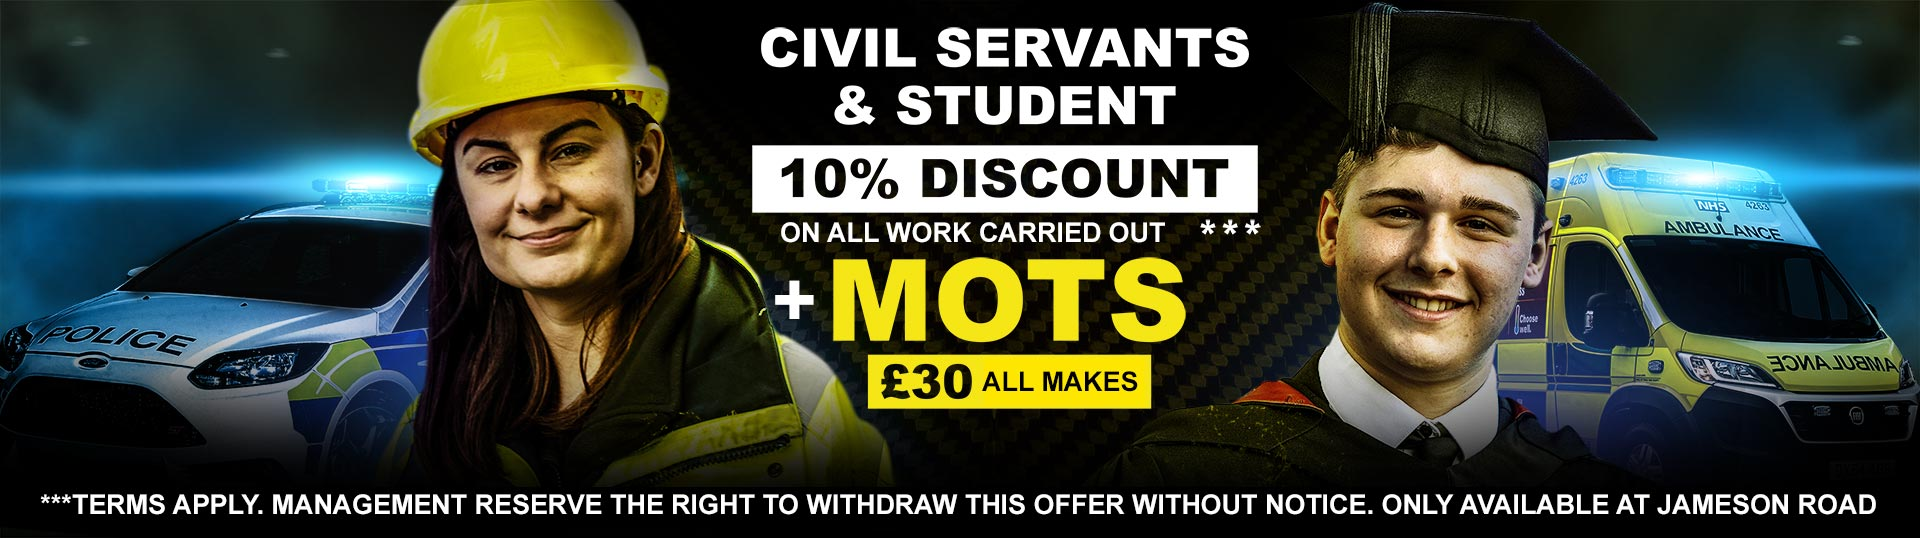 Bournemouth MOT Offer Civil Servants and Student 10% Discount by Stanfield Garage